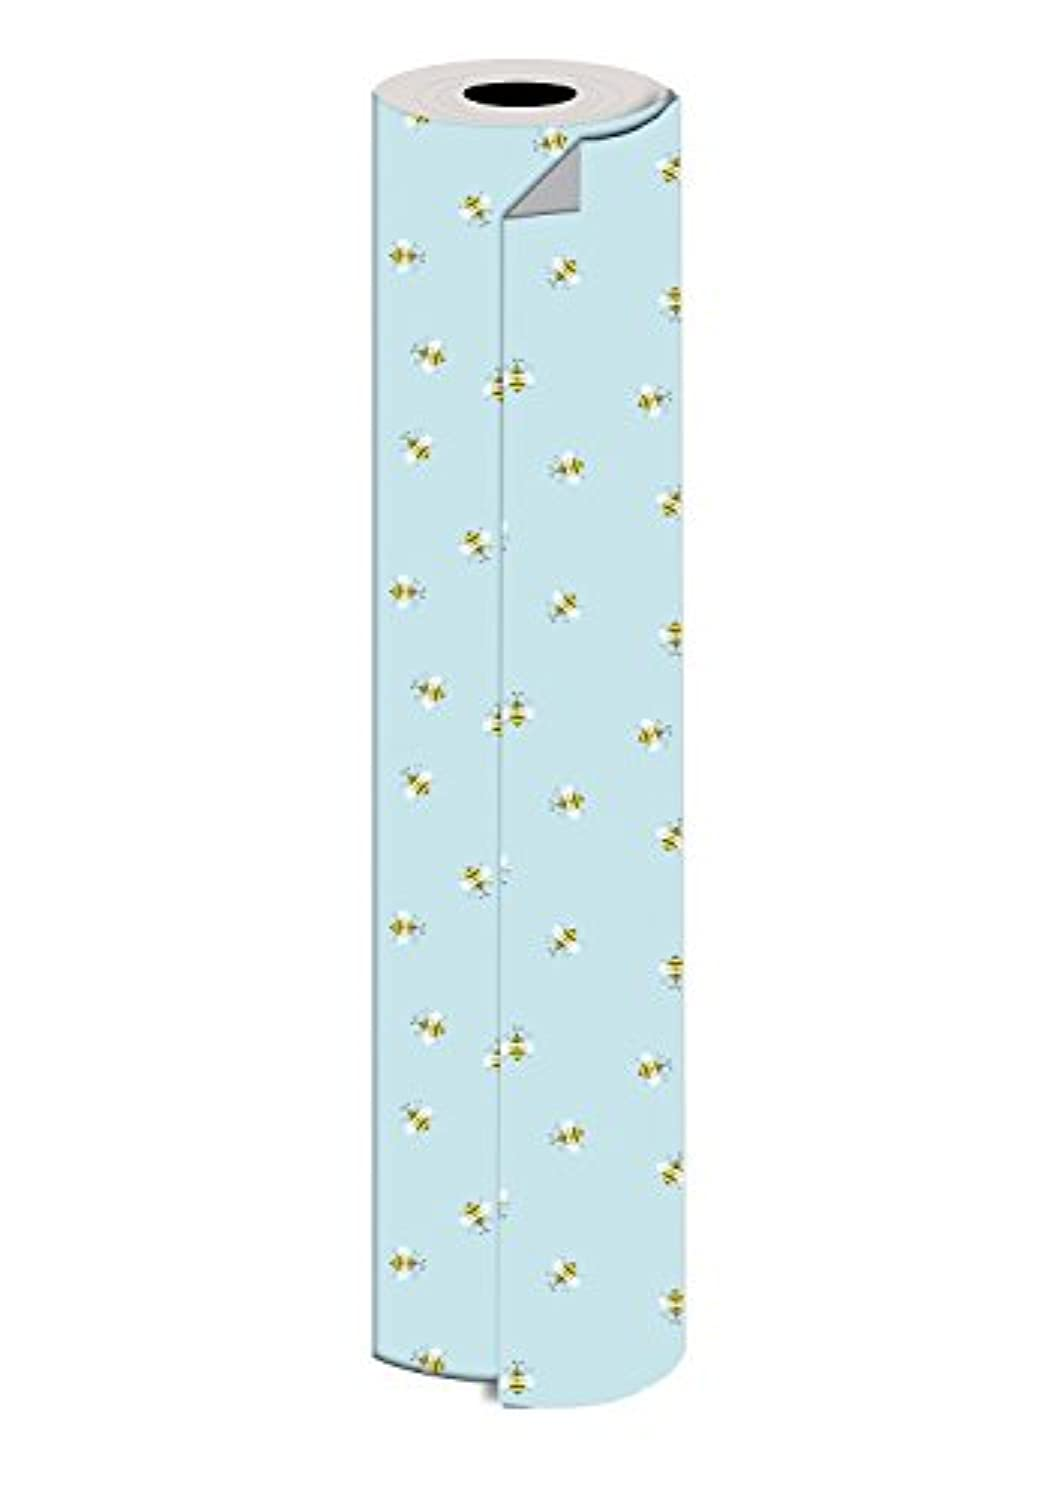 Jillson Roberts Bulk 1/4 Ream Gift Wrap Available in 11 Different Designs, 30